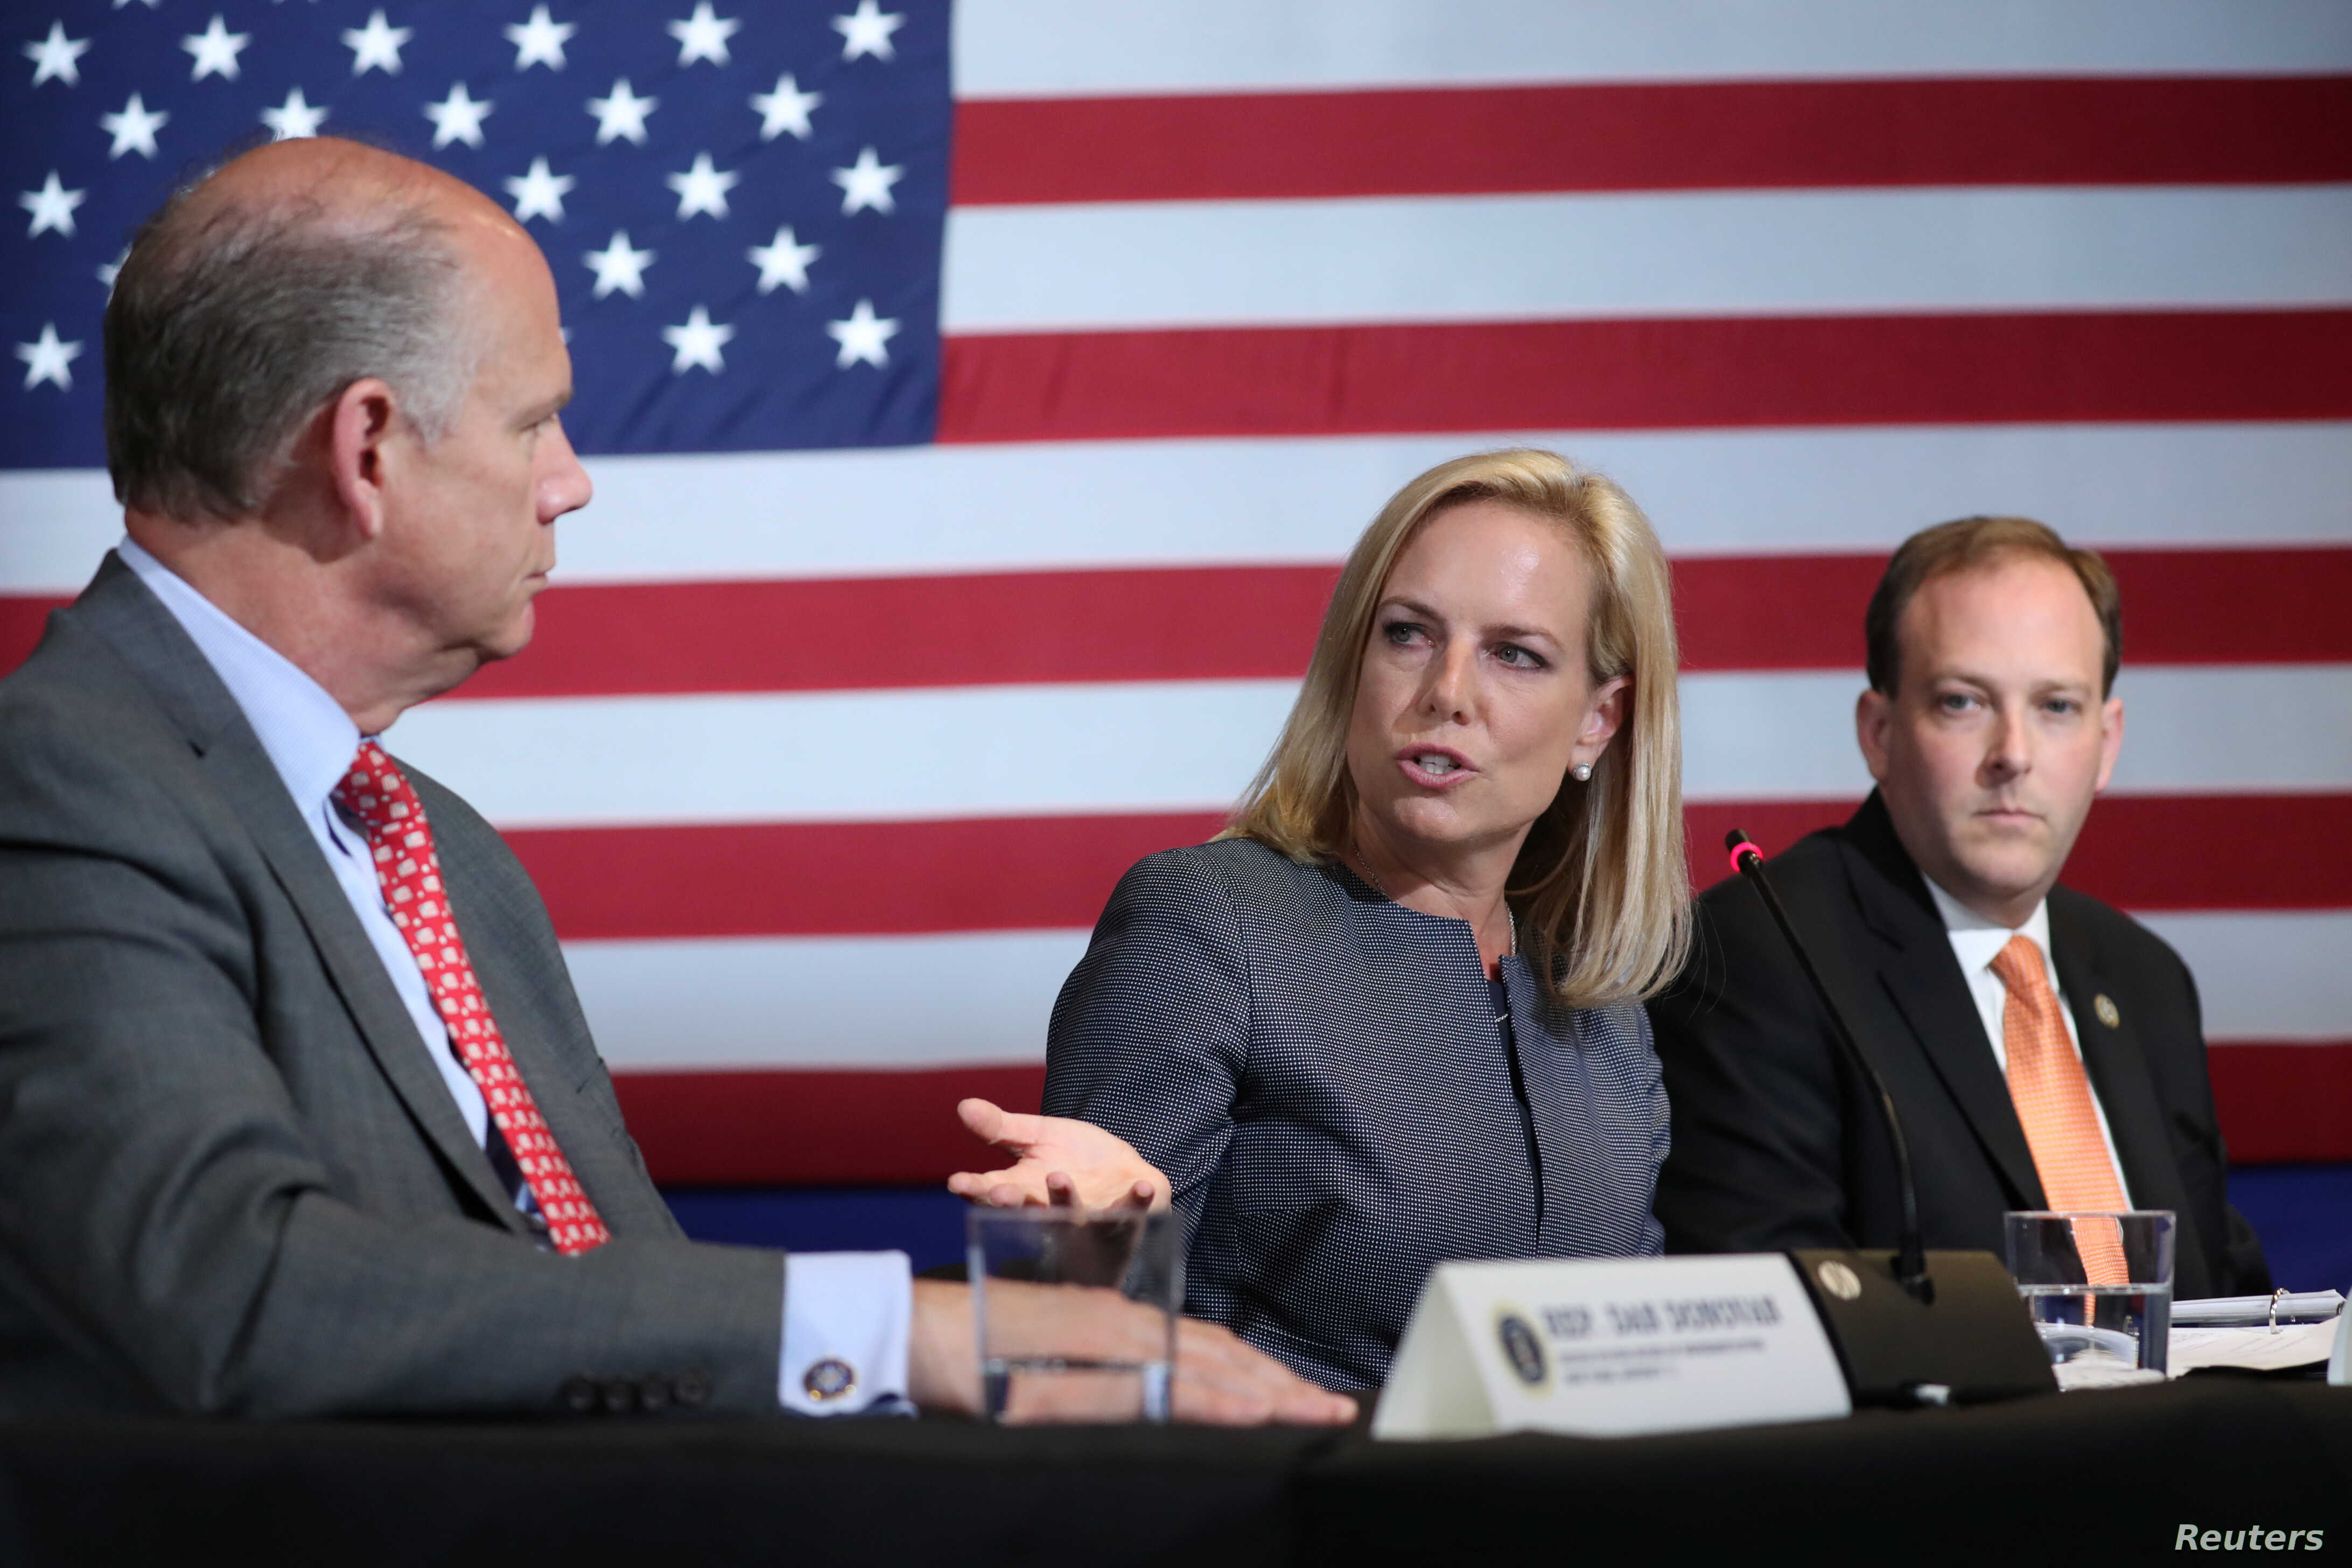 U.S. Secretary of Homeland Security Kirstjen Nielsen gestures toward U.S. Rep. Dan Donovan, R-N.Y., as she sits between Donovan and Rep. Lee Zeldin, R-N.Y., during a discussion on immigration and the gang MS-13 with U.S. President Donald Trump at the...